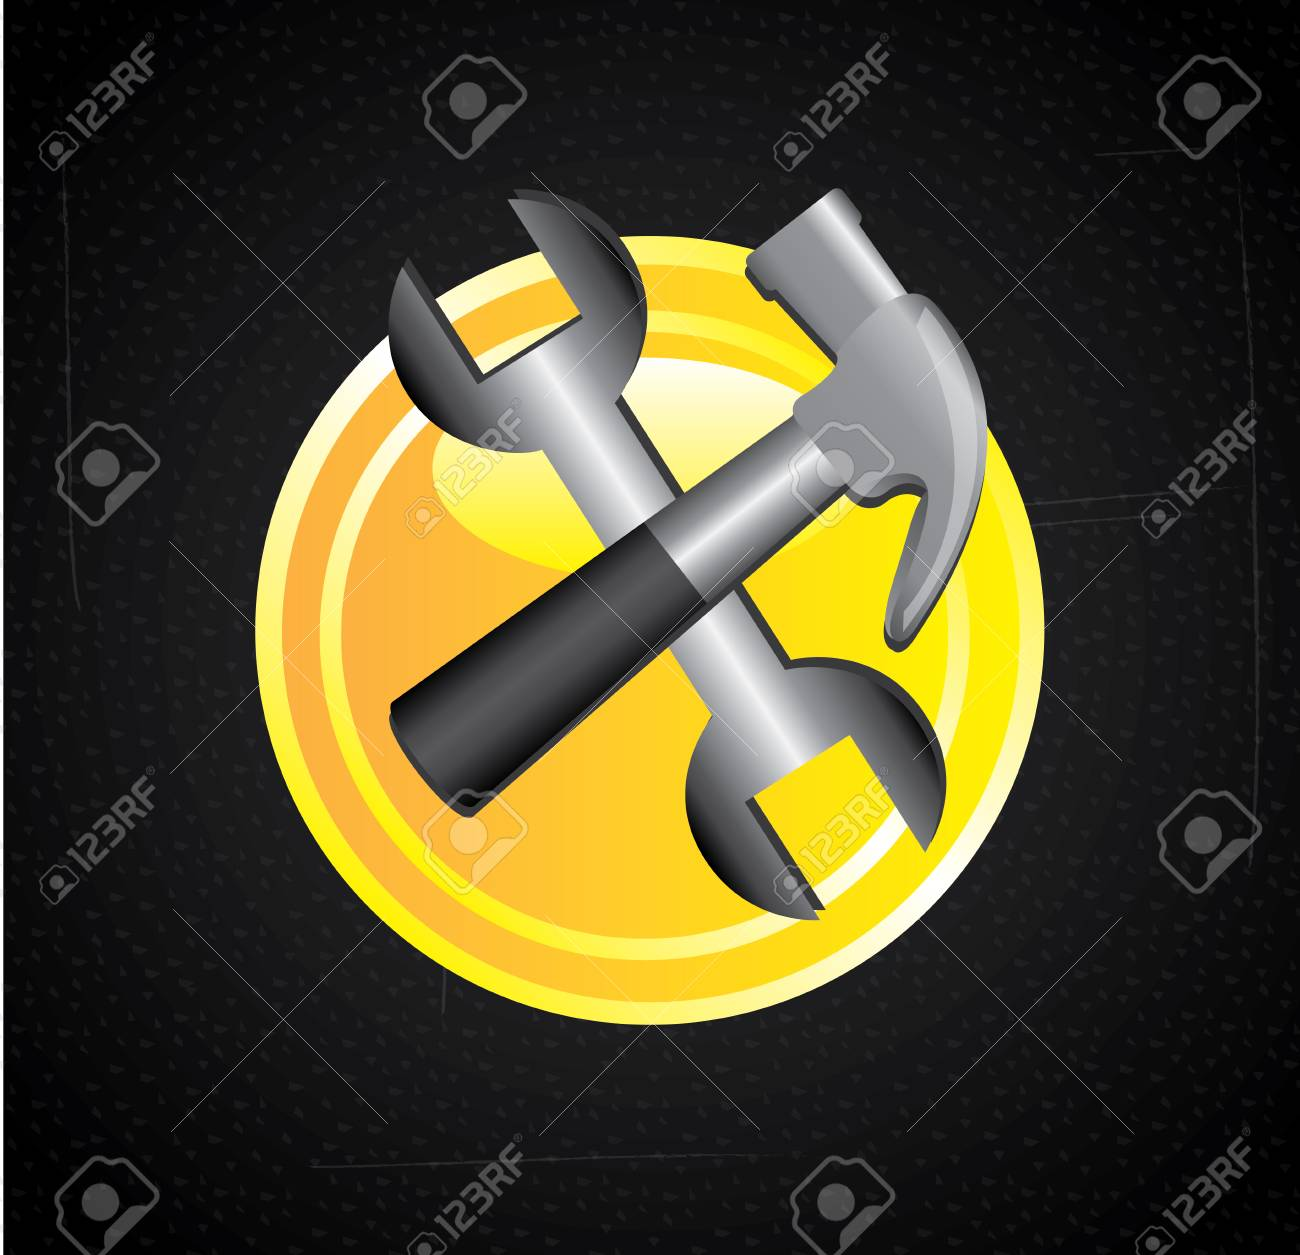 hammer and wrench isolated over black background. vector illustration Stock Vector - 22452792